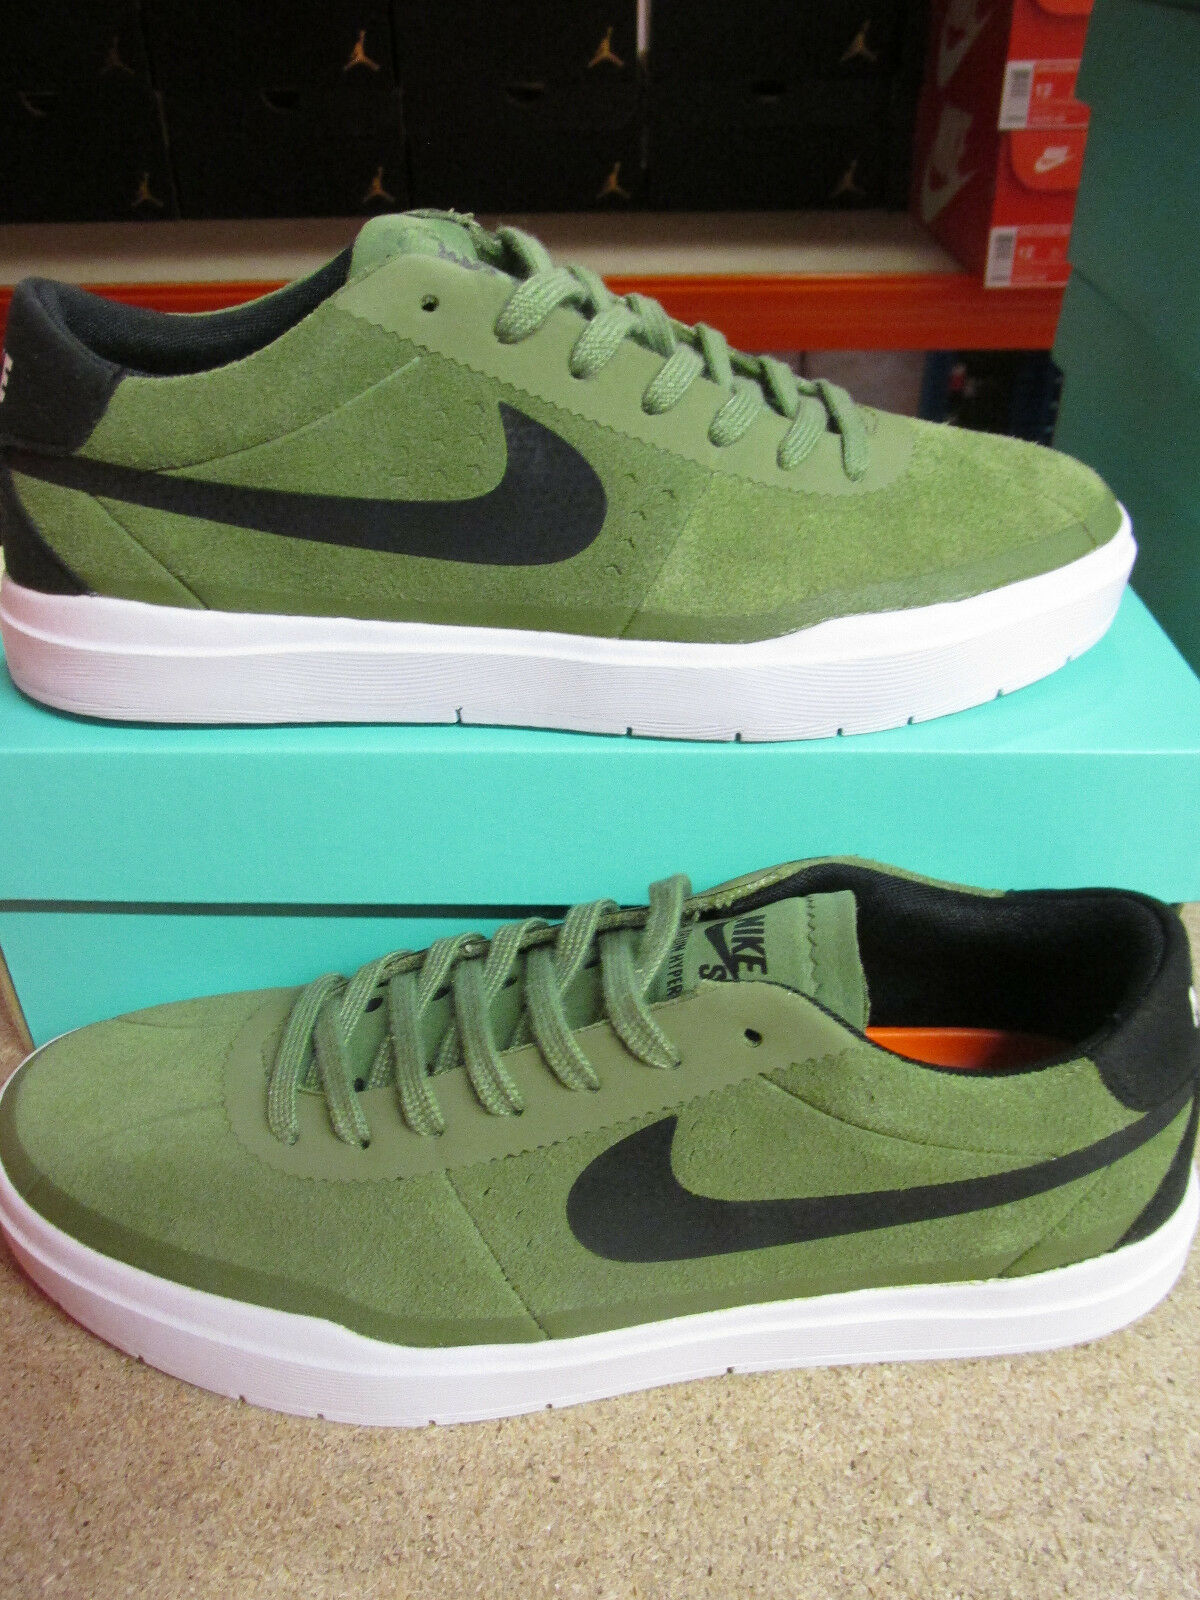 Nike Sb Bruin Hyperfeel Baskets Hommes 831756 300 Baskets